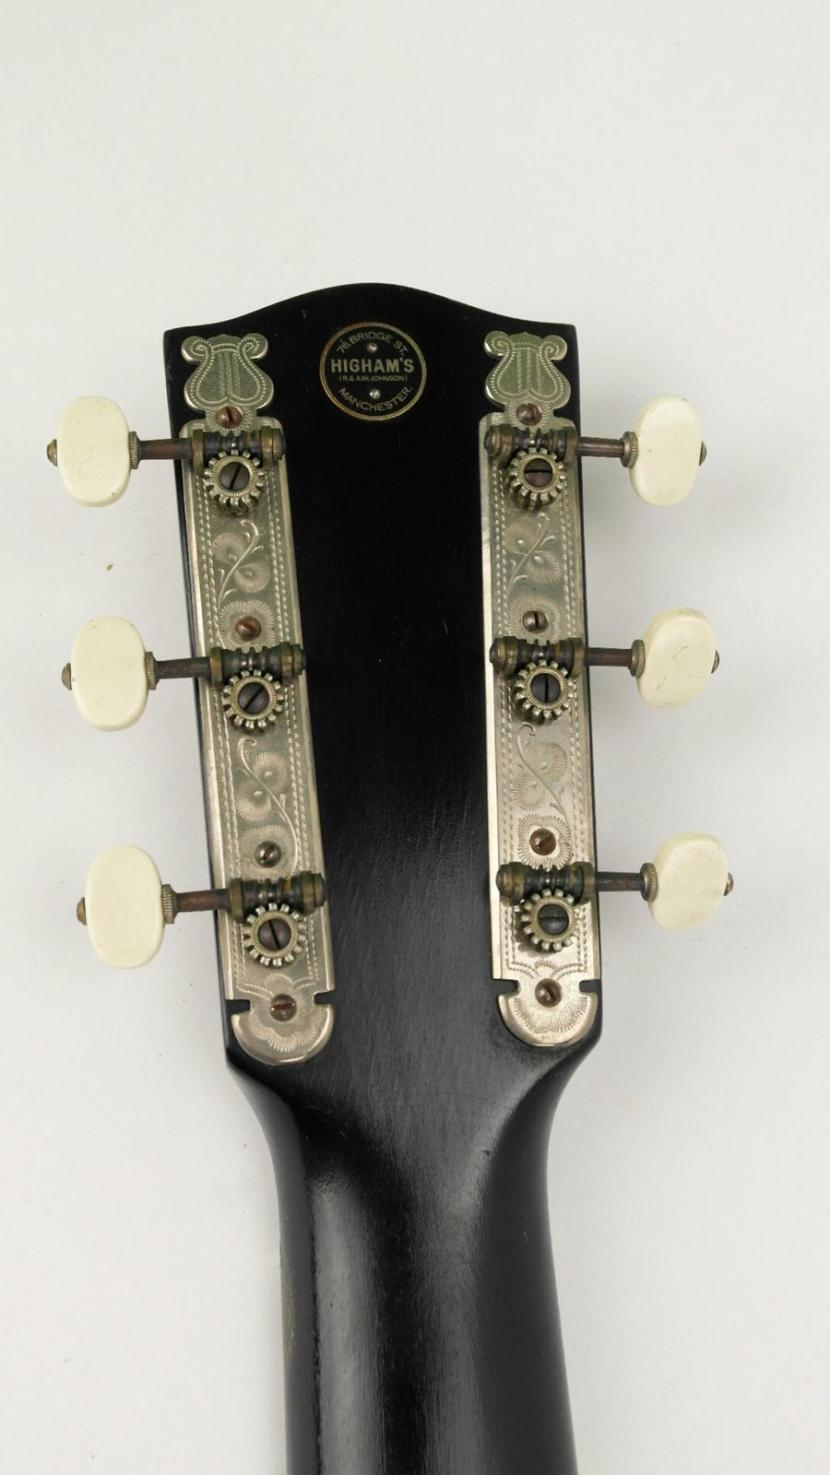 martin coletti g40 guitar headstock rear